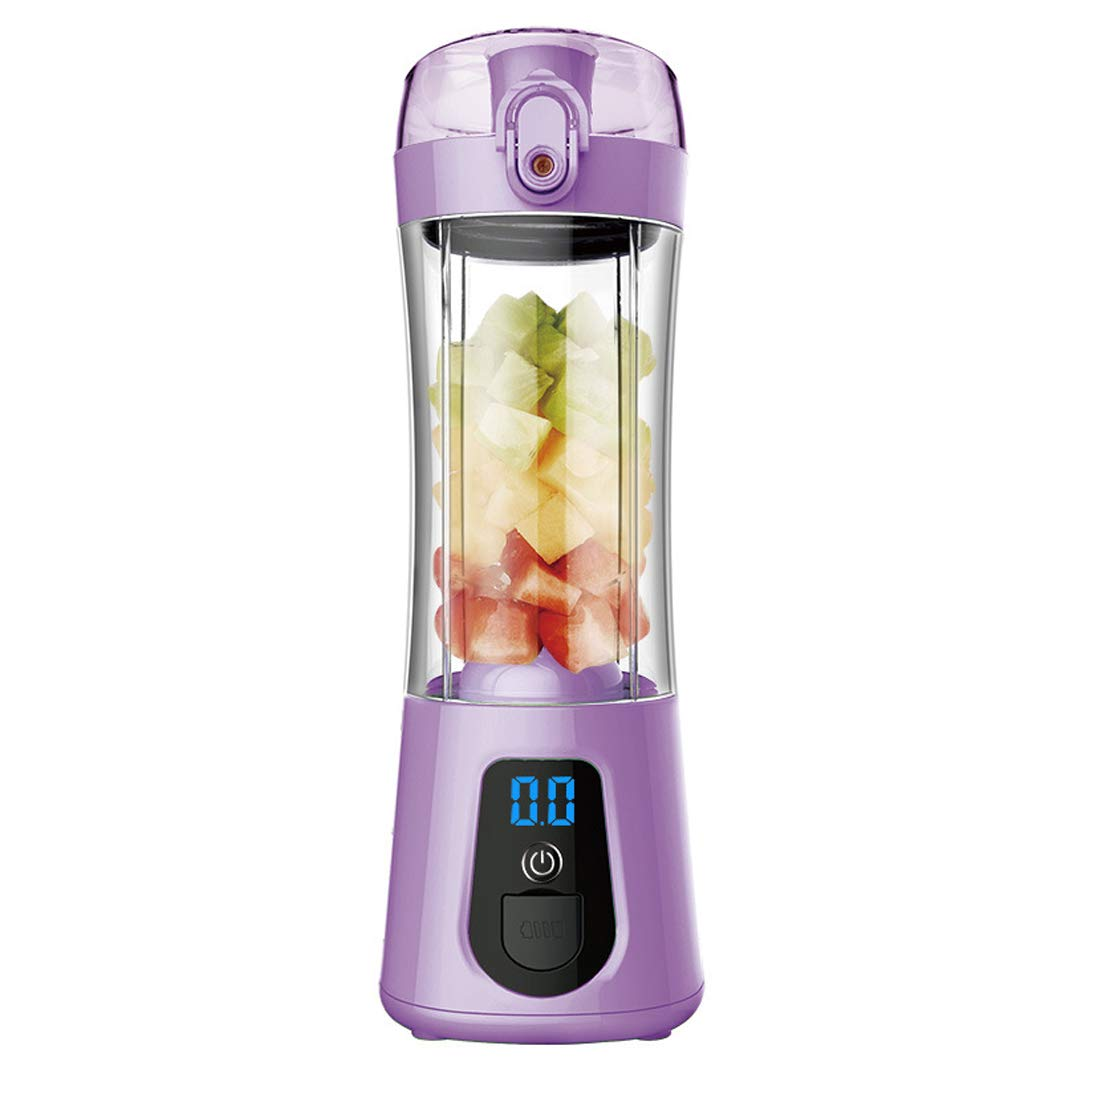 SSCJ USB Juicer Cup Portable Blender Rechargeable Three Blades in 3D, Fruit Mixing Machine with USB Charger Cable for 380ml Fruit Mixing Machine with USB Cable,Purple